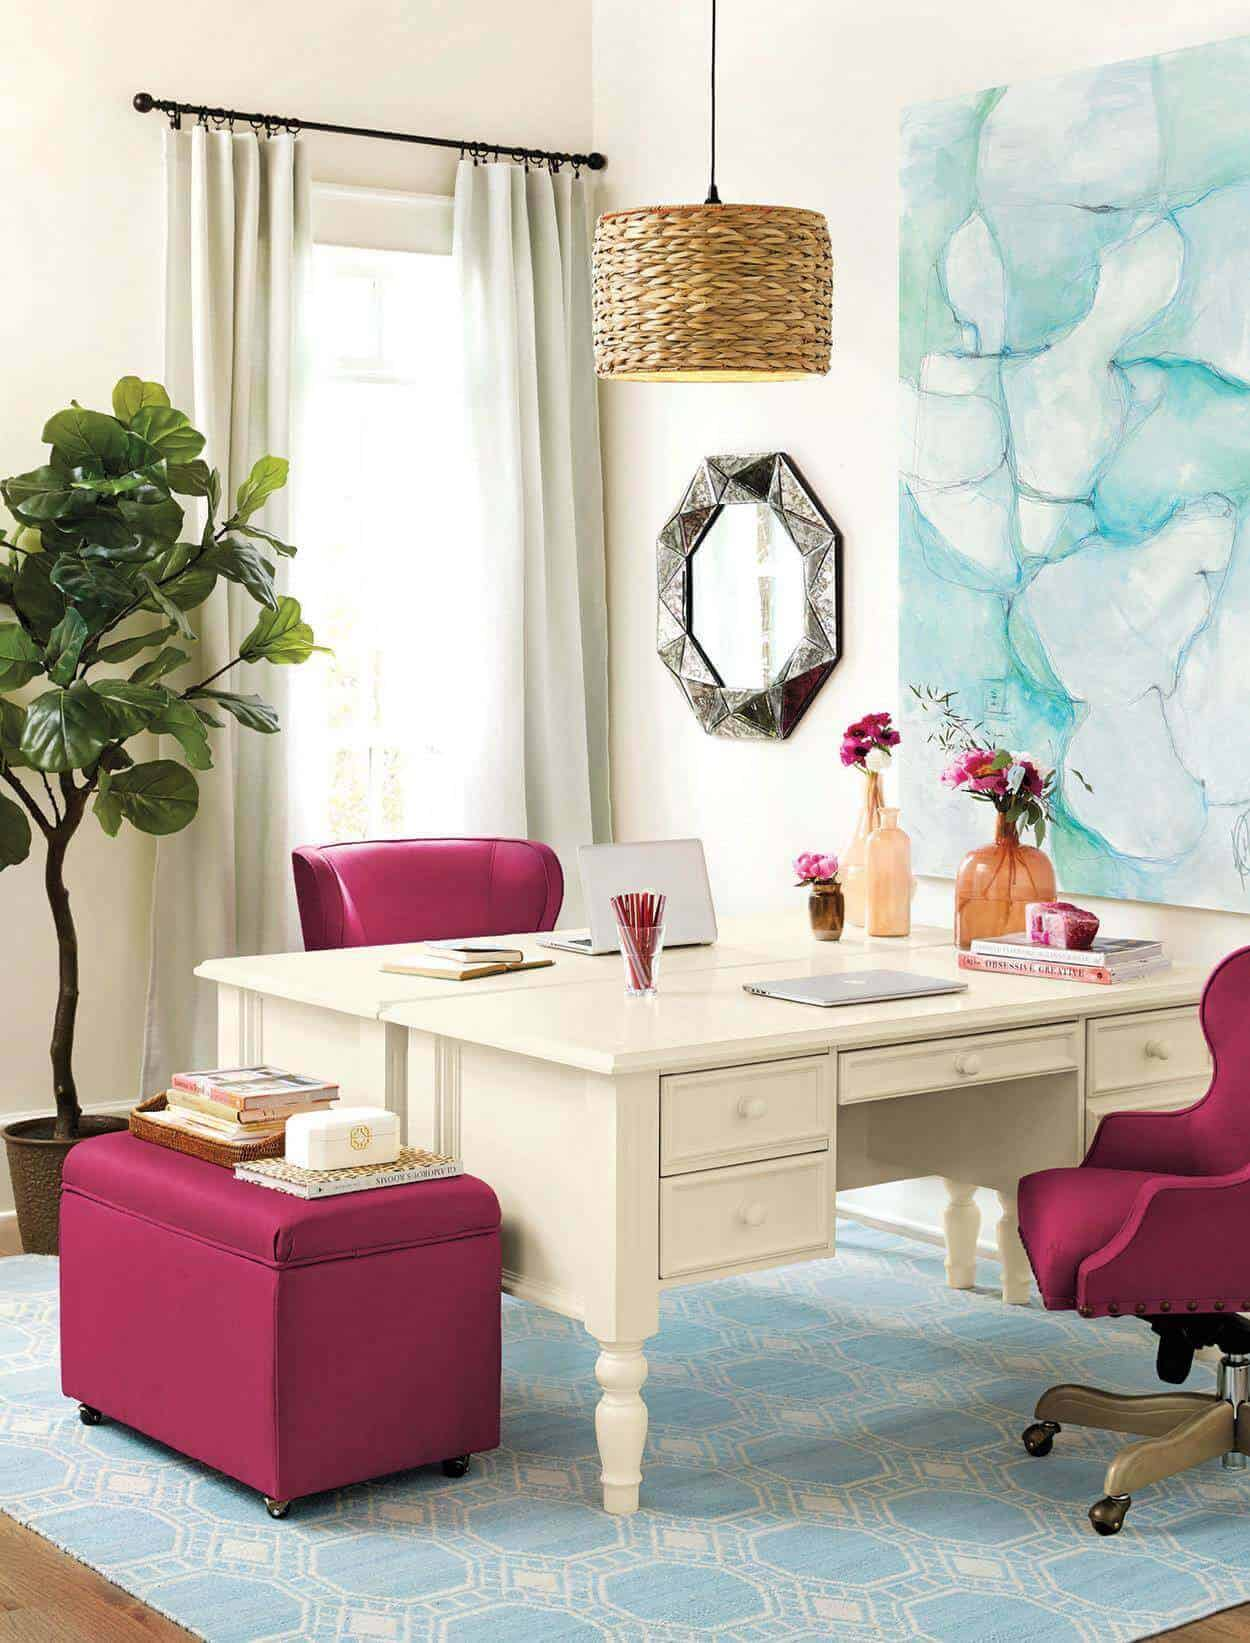 By rethinking the office layout, you can access the available space to understand how you can make your two person office design in the best way possible.